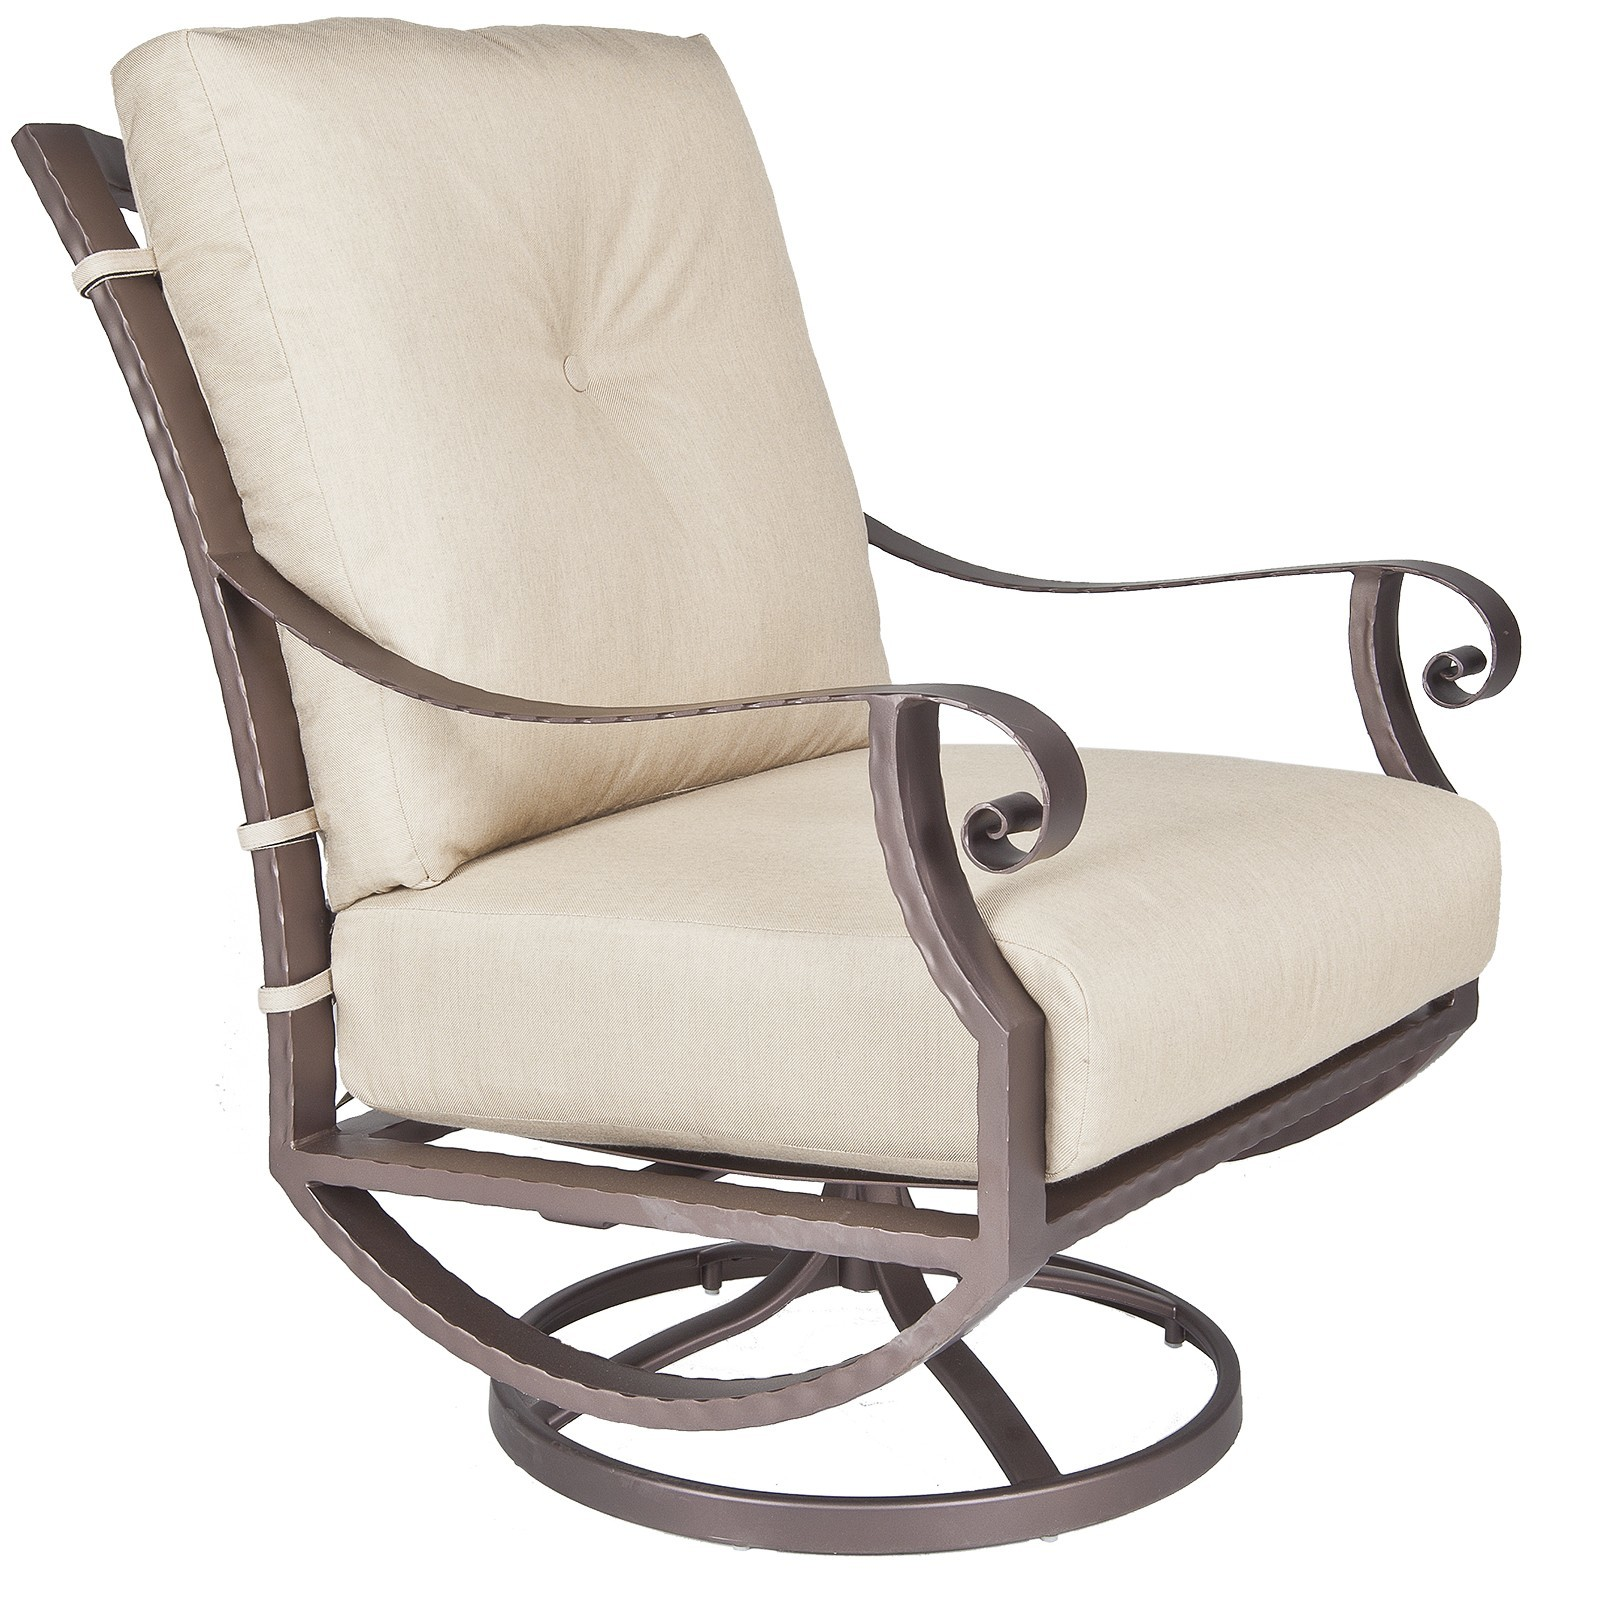 Luna Swivel Rocker Lounge Chair - Hauser's Patio